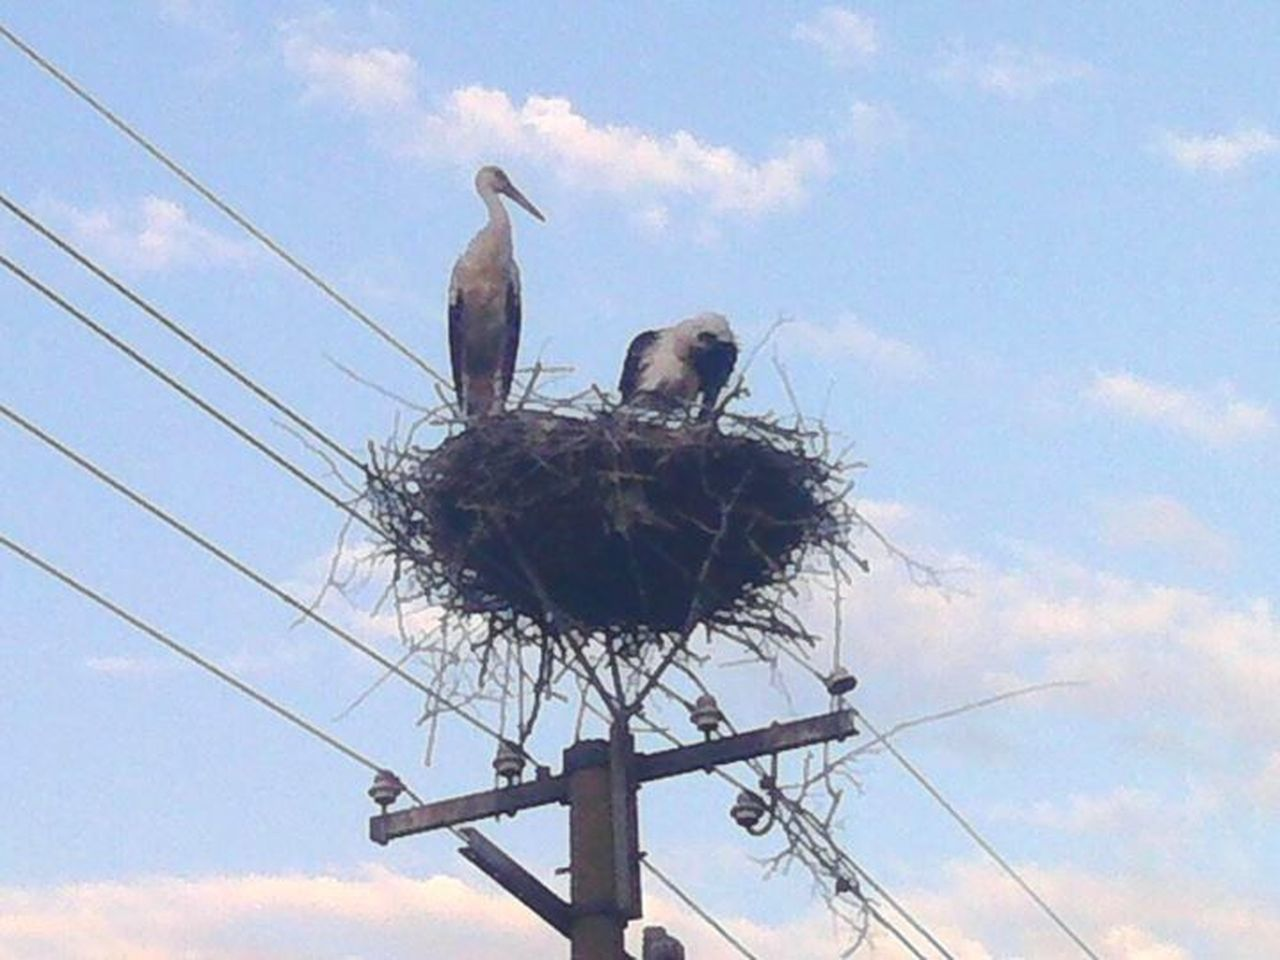 bird, animals in the wild, two animals, cloud - sky, stork, low angle view, sky, animal themes, bird nest, togetherness, perching, day, animal wildlife, outdoors, no people, white stork, nature, mourning dove